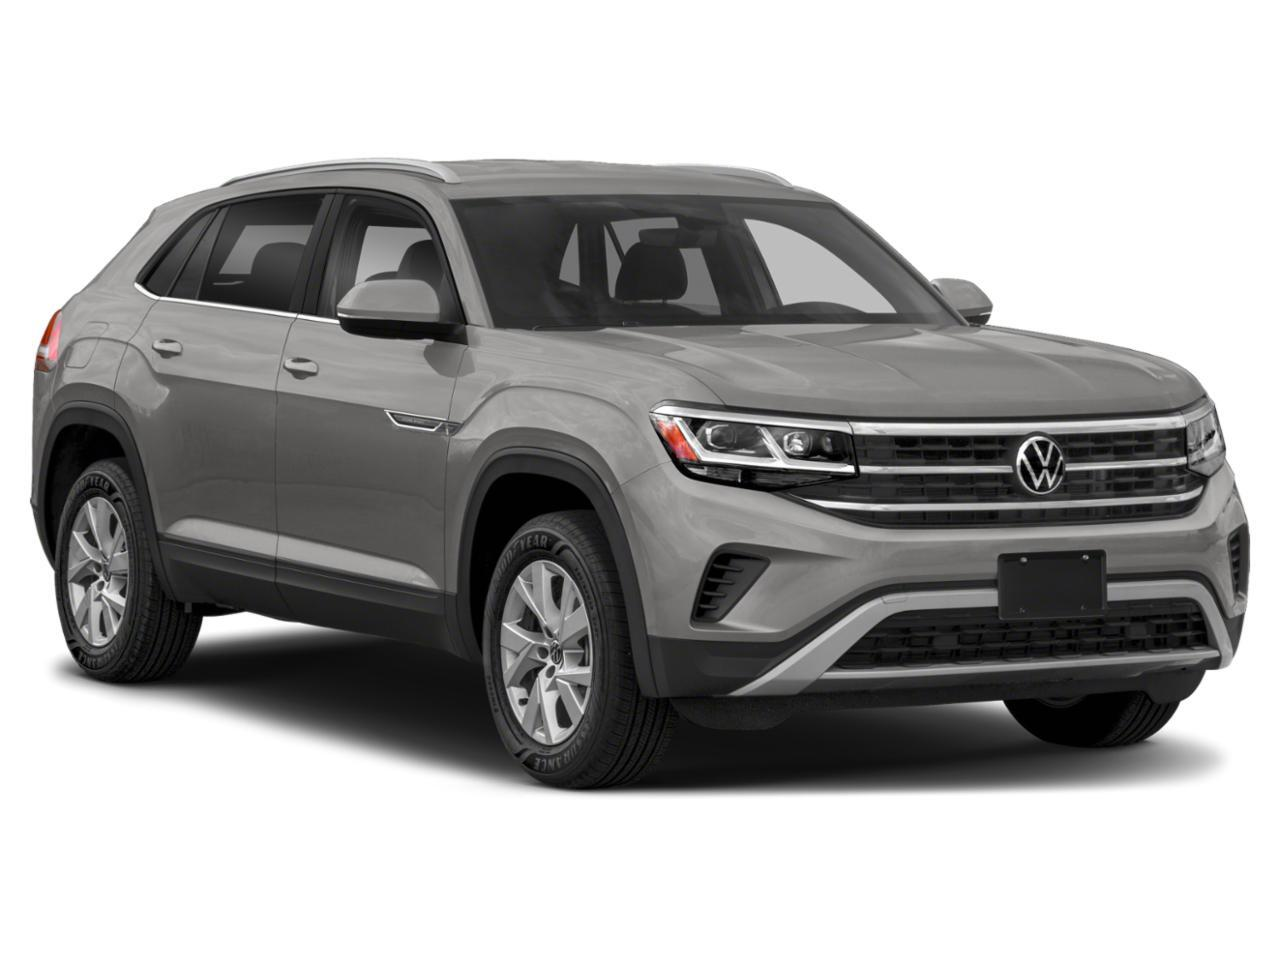 2020 Volkswagen Atlas Cross Sport 3.6L V6 SE w/Technology Walnut Creek CA